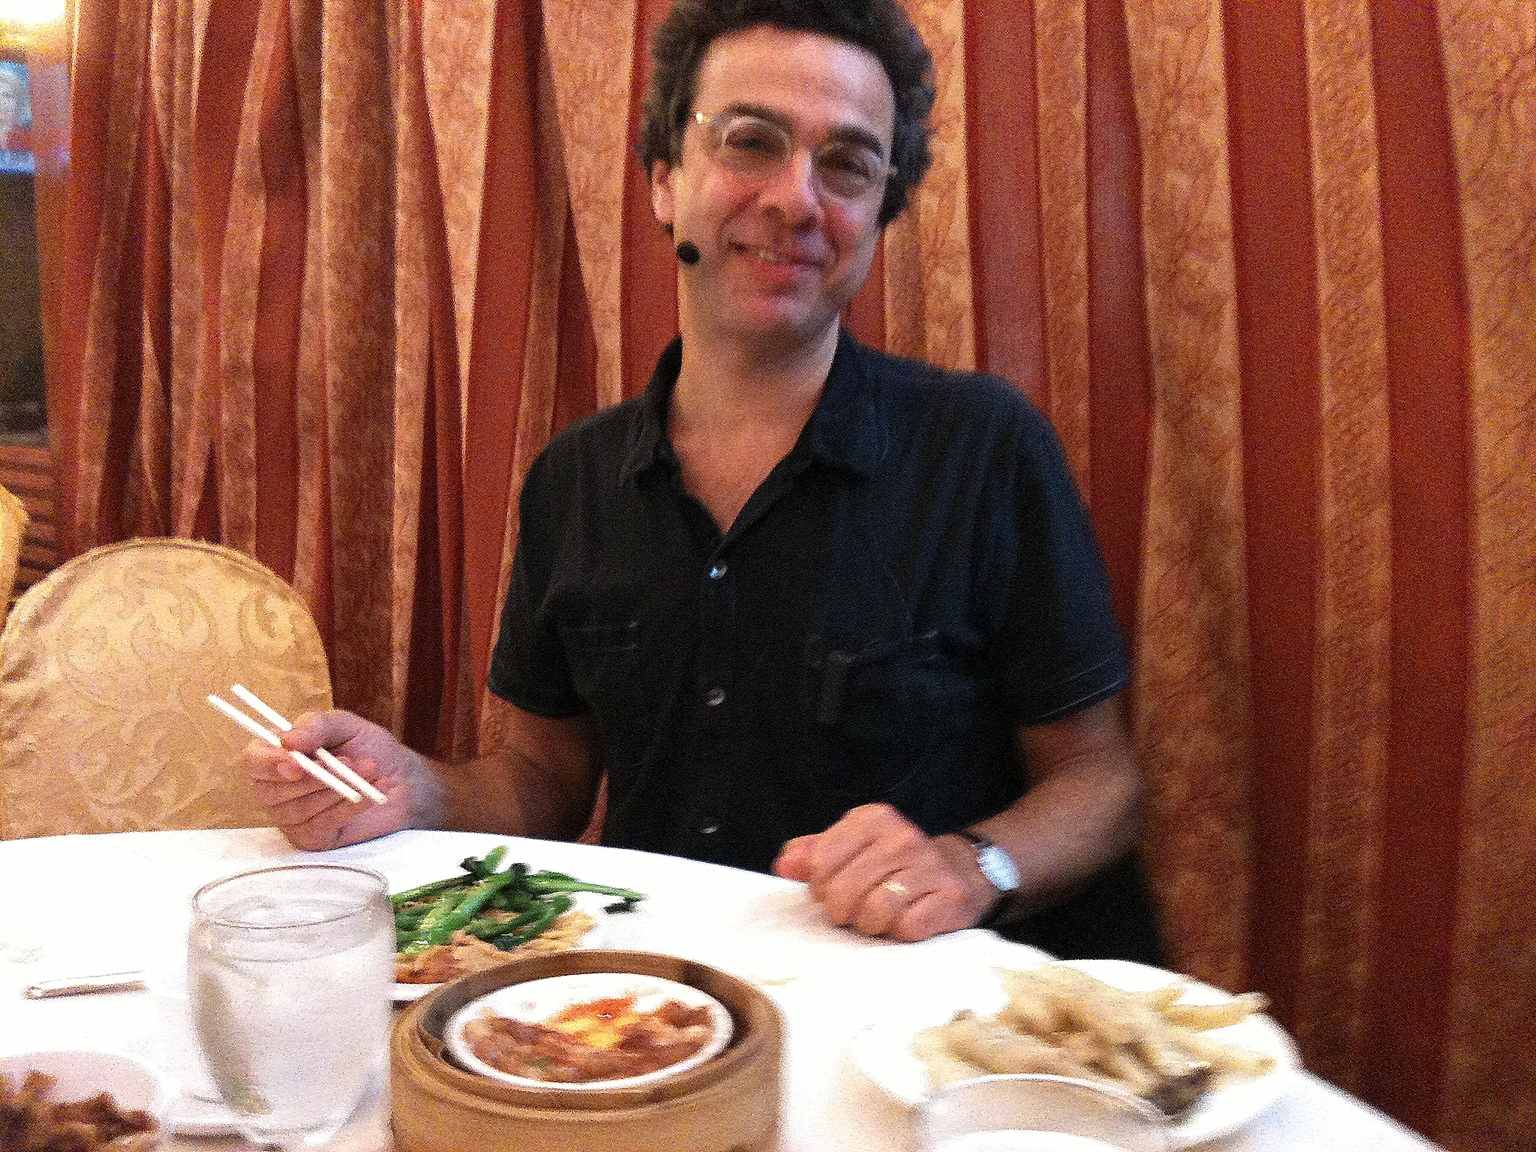 Freakonomics here s what a lunch of chicken feet looks like - Freakonomics table of contents ...